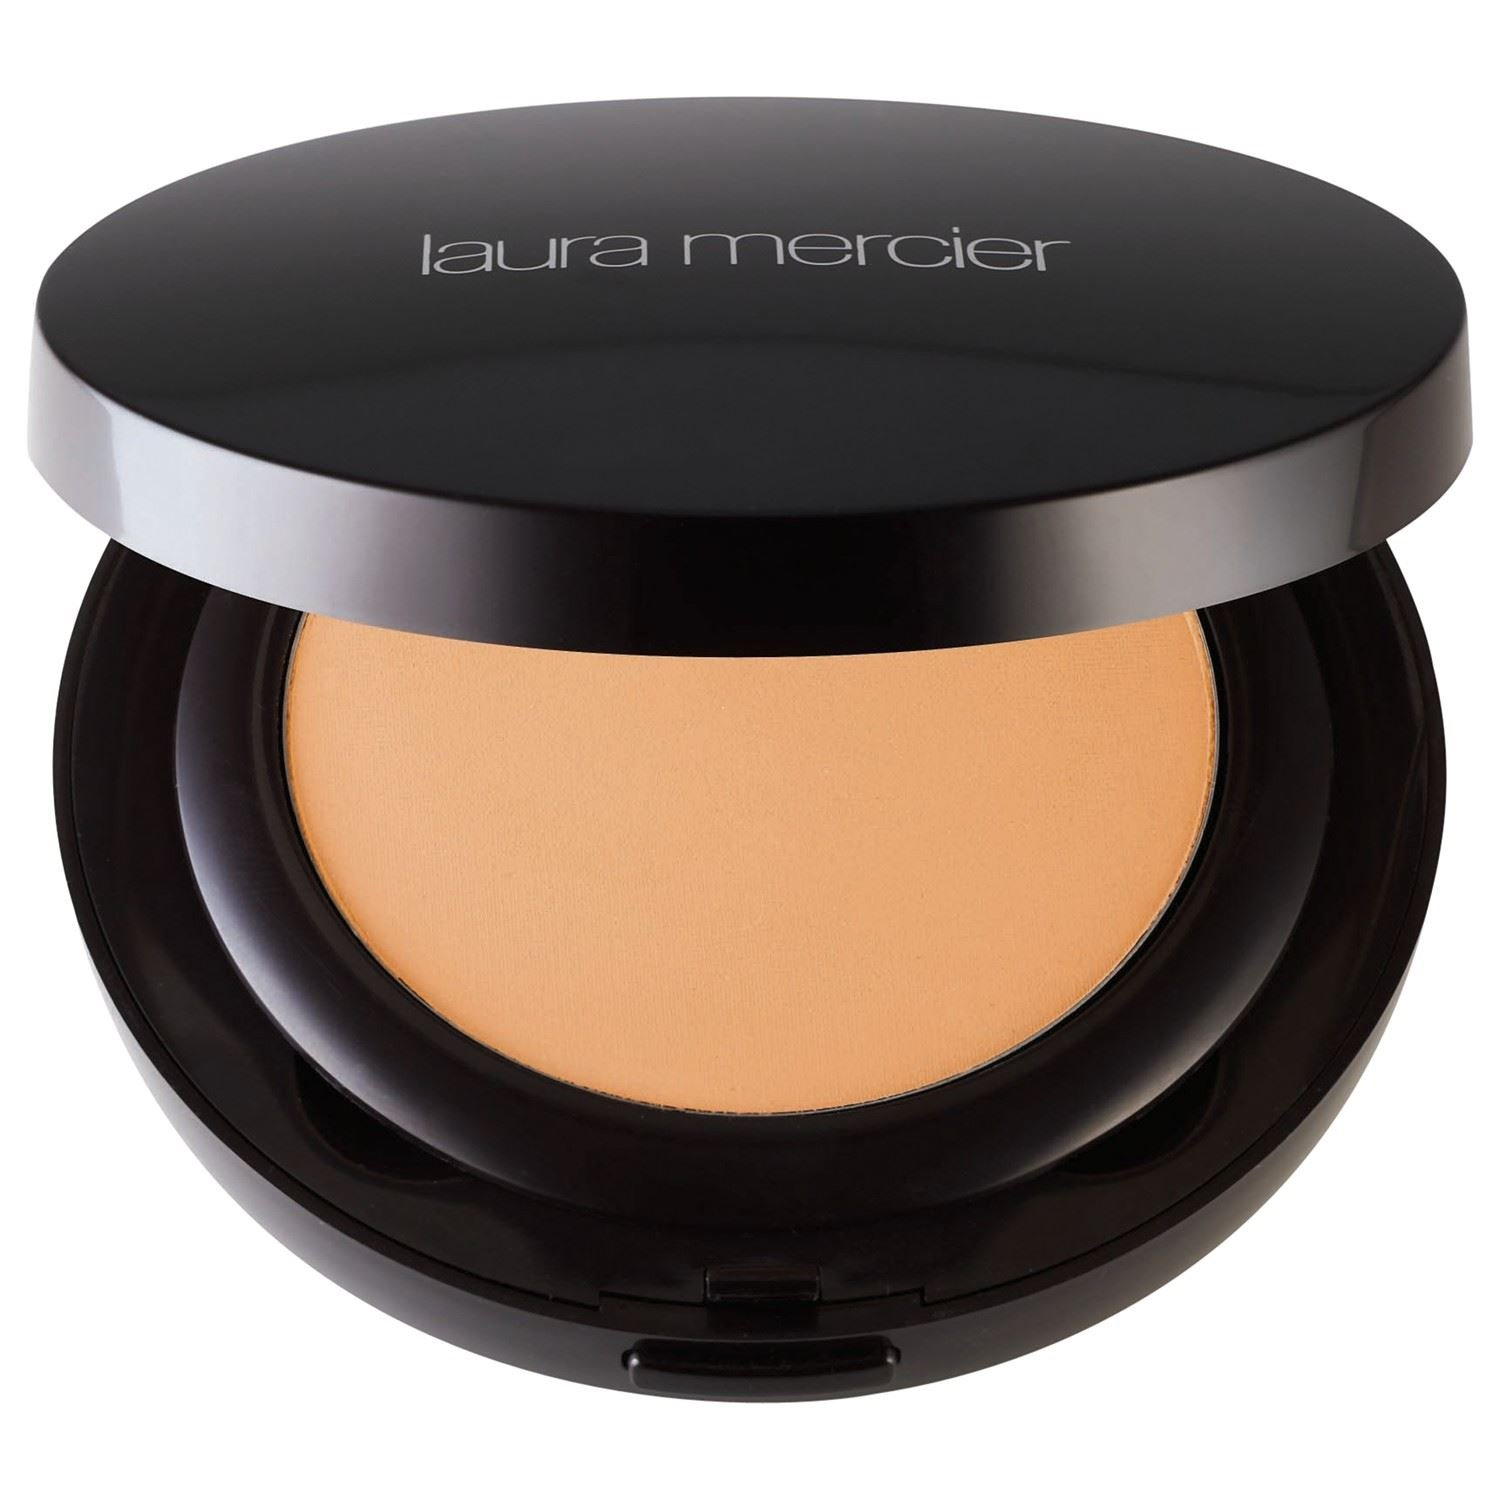 Laura Mercier Smooth Finish Foundation Powder Bamboo 07